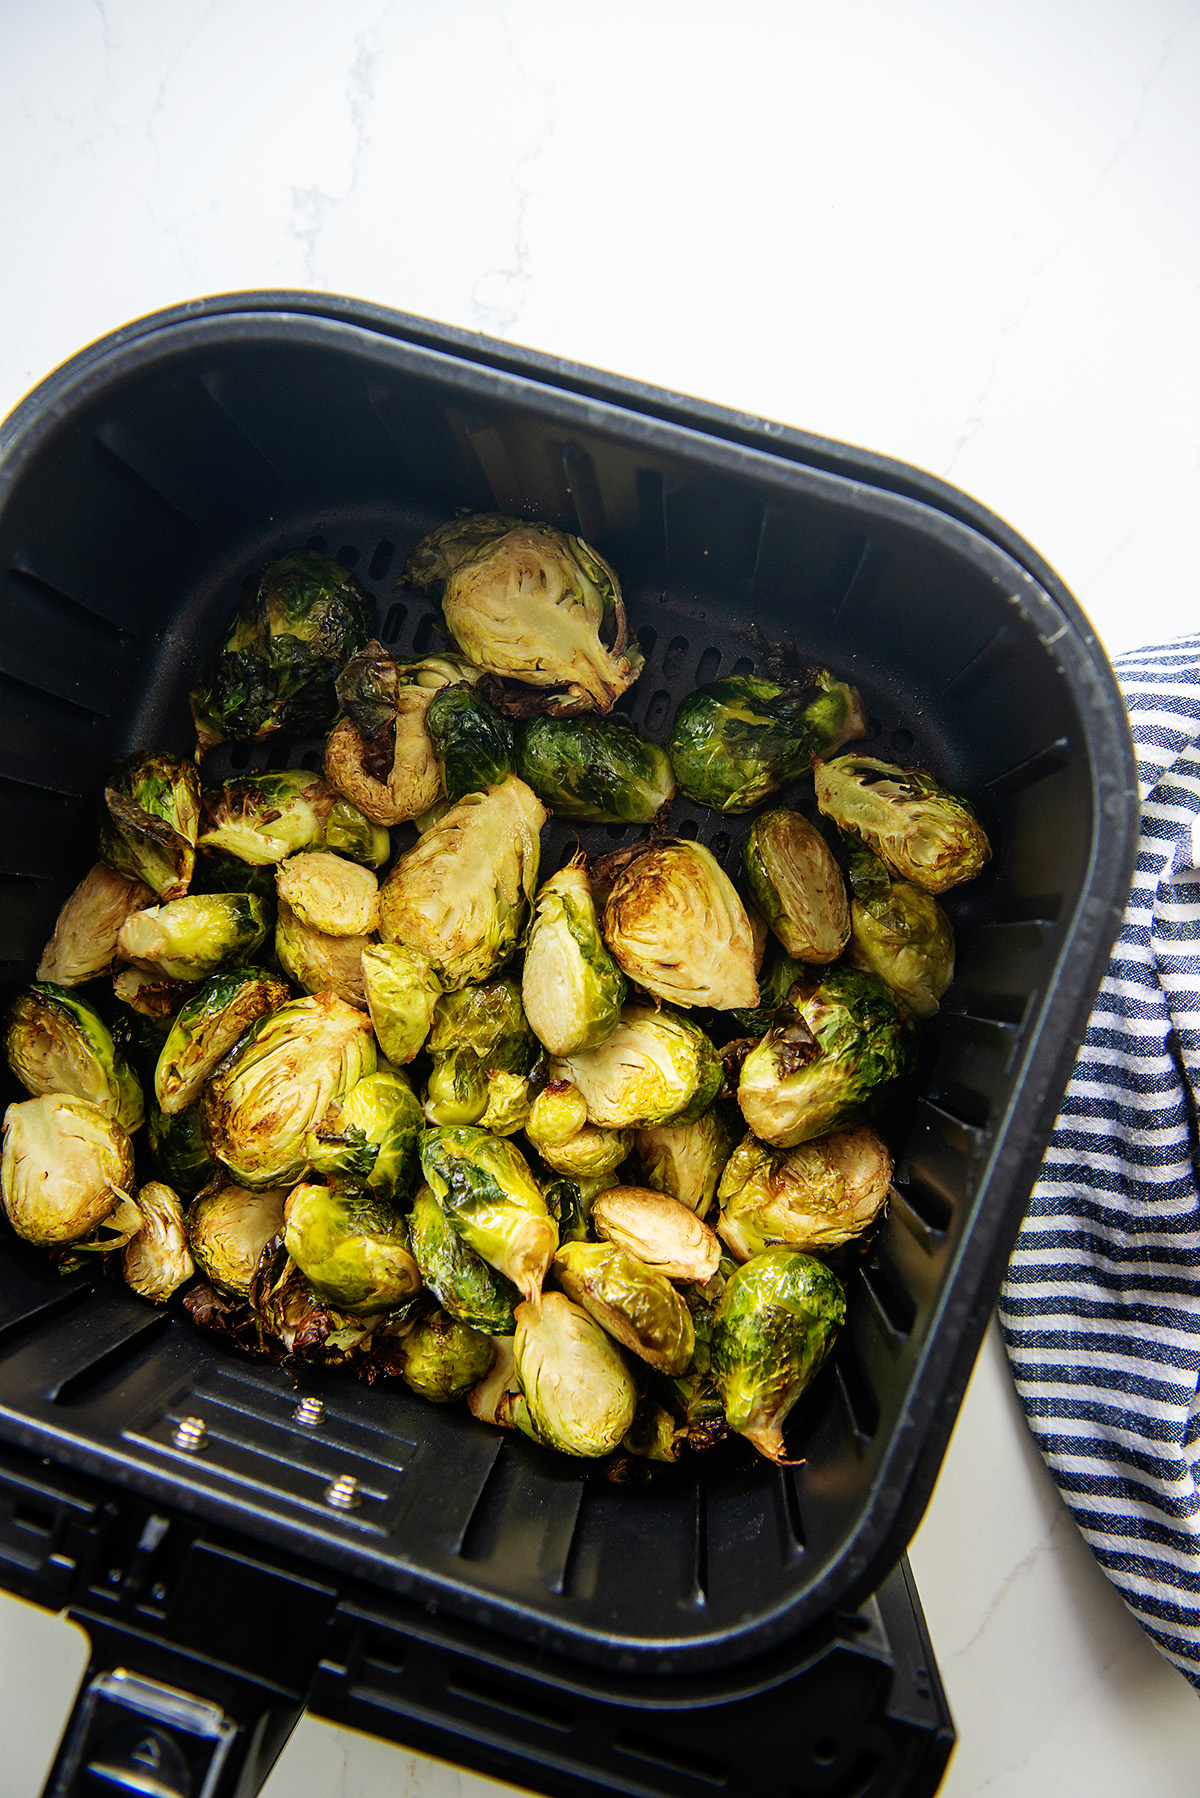 Cut brussels sprouts in an air fryer basket